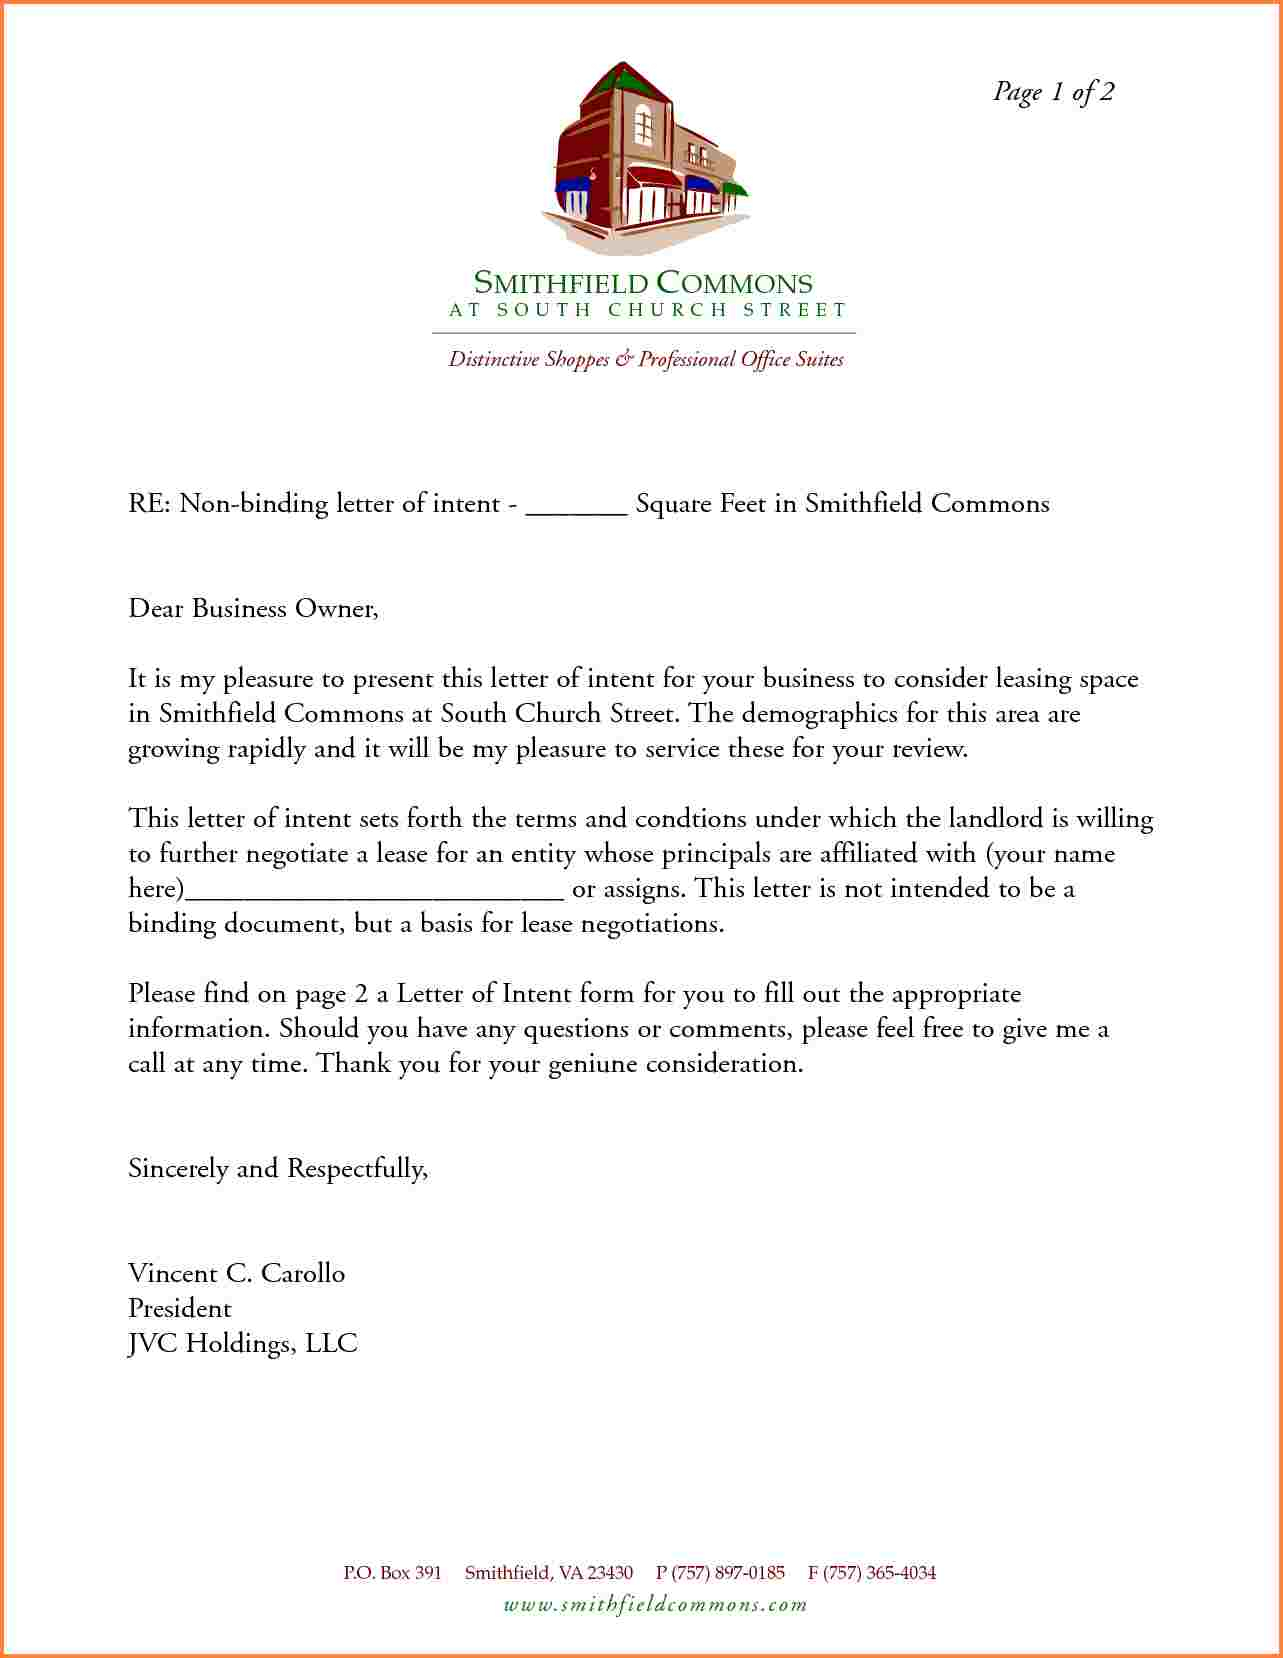 Intent to Lease Letter Template - Mercial Lease Letter Intent Example Sample to Restaurant Space